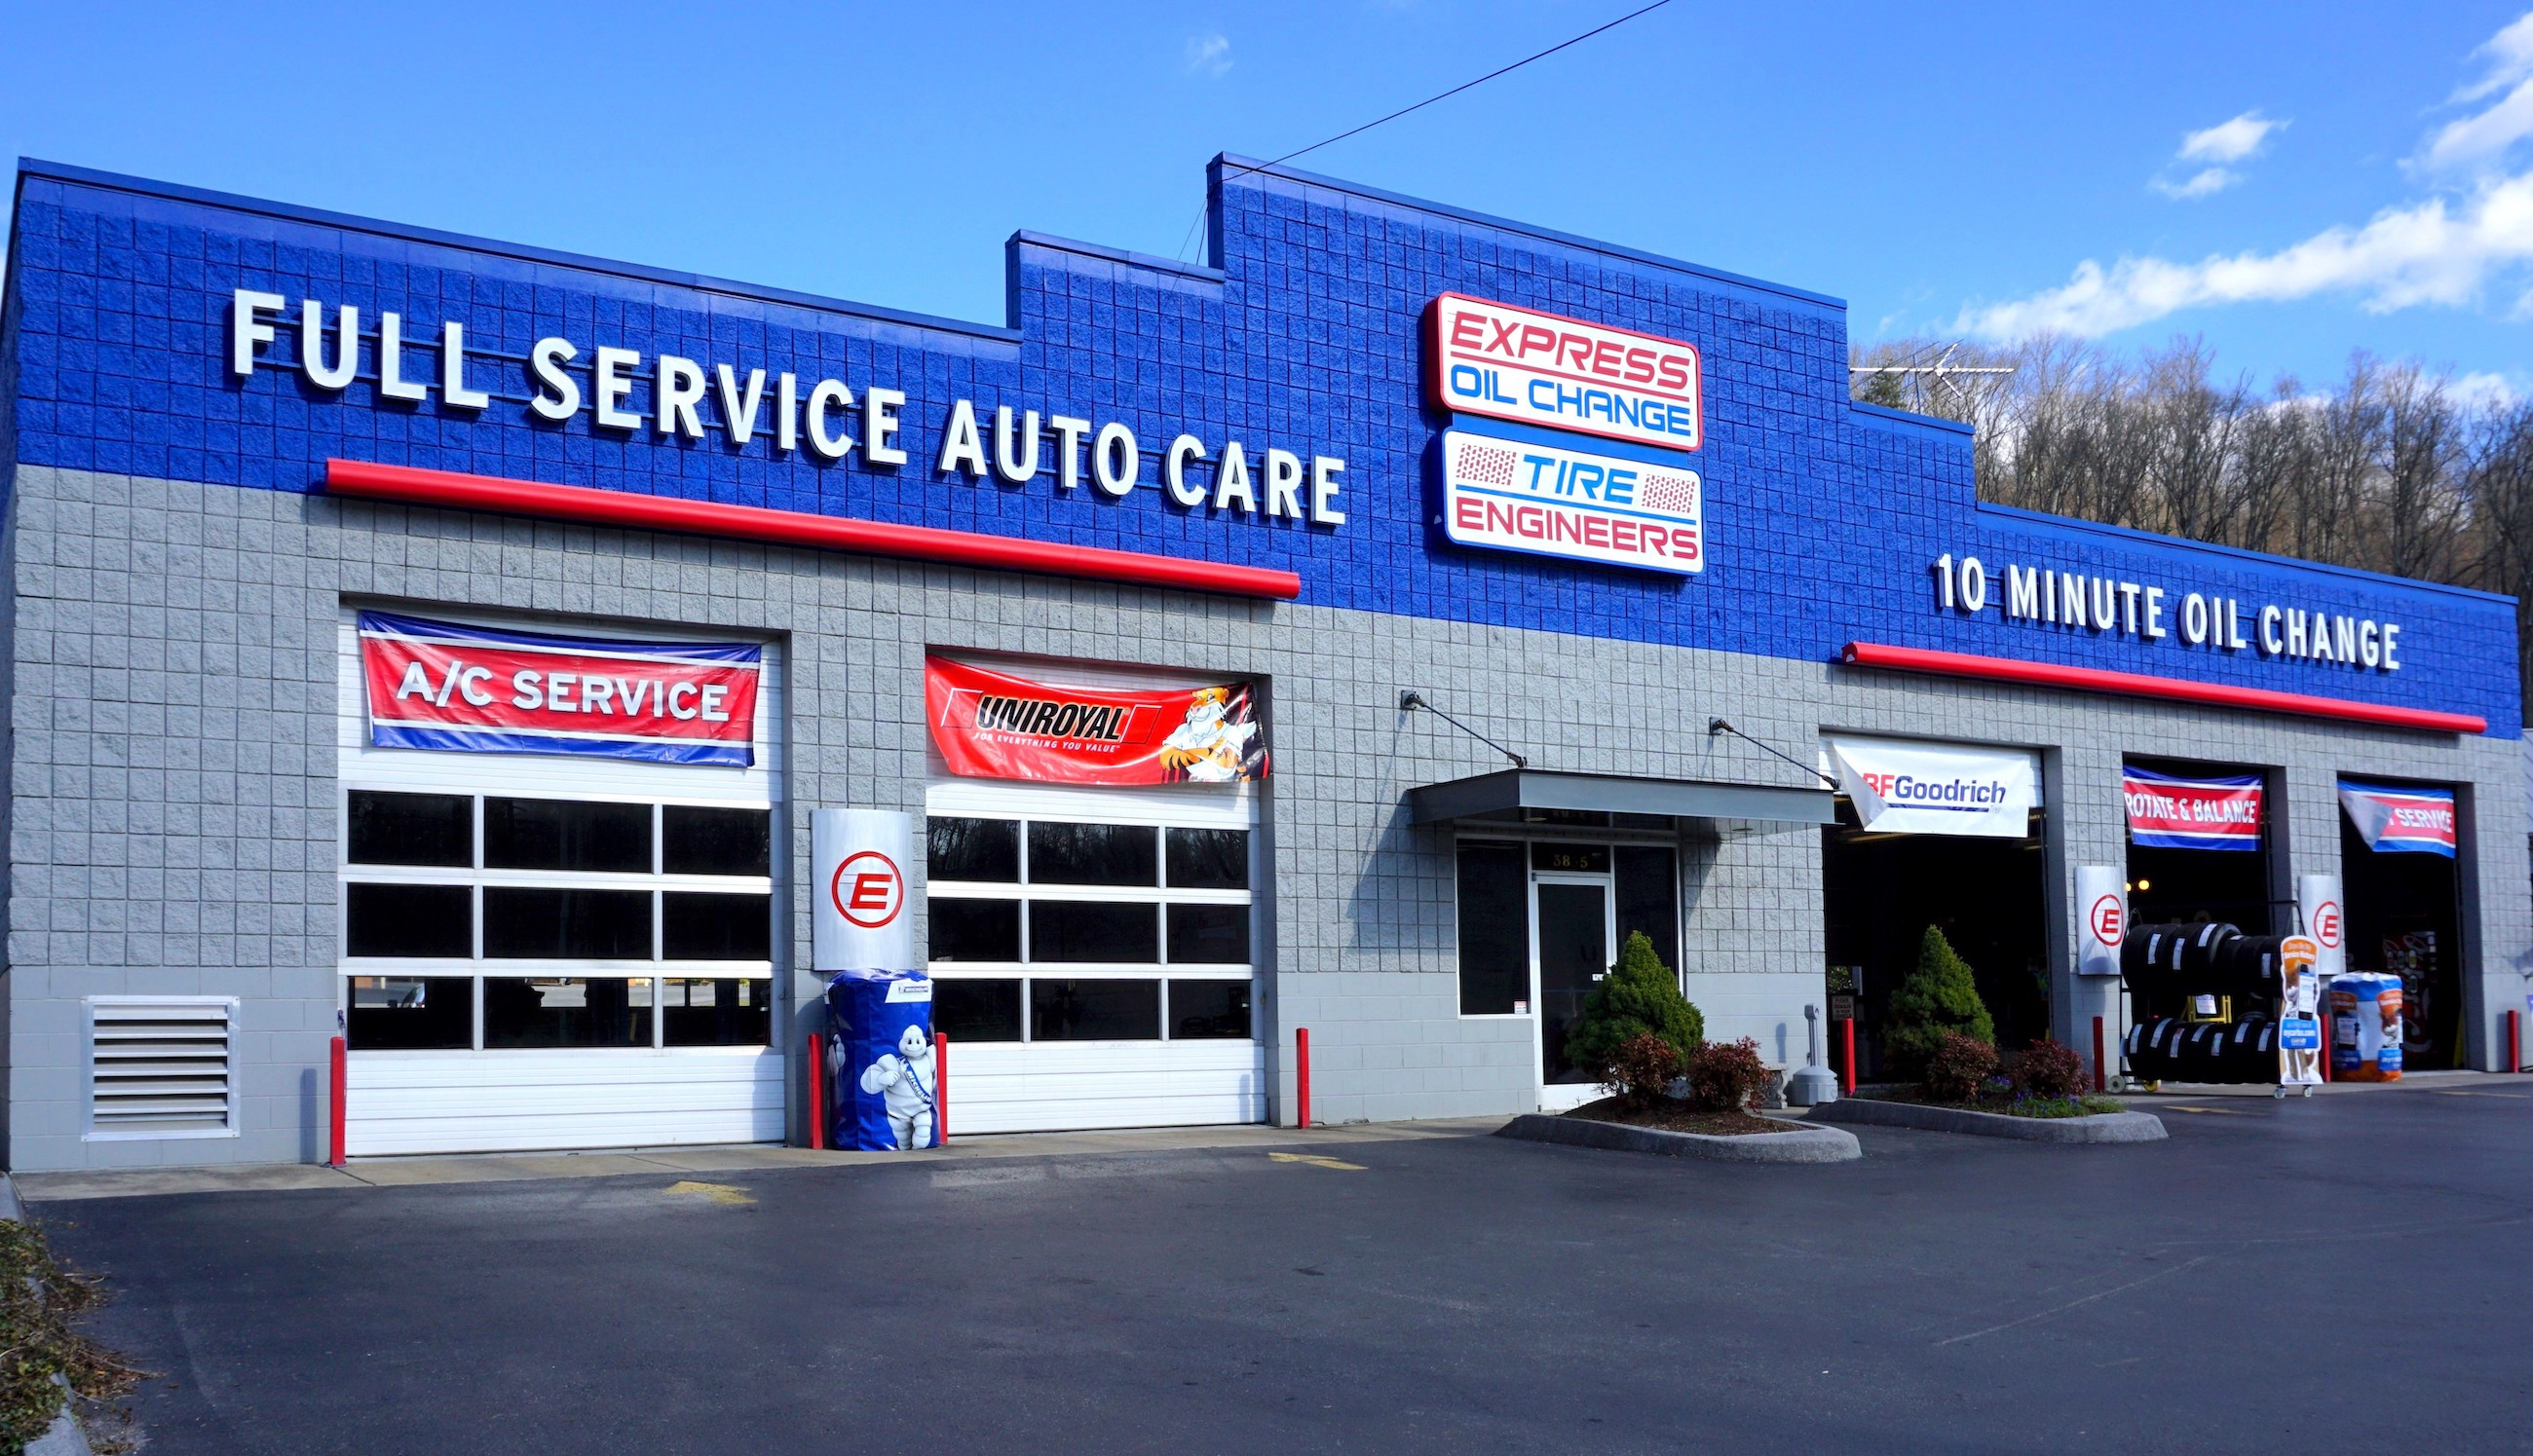 Express Oil Change & Tire Engineers at Kingsport, TN - Fort Henry Drive store